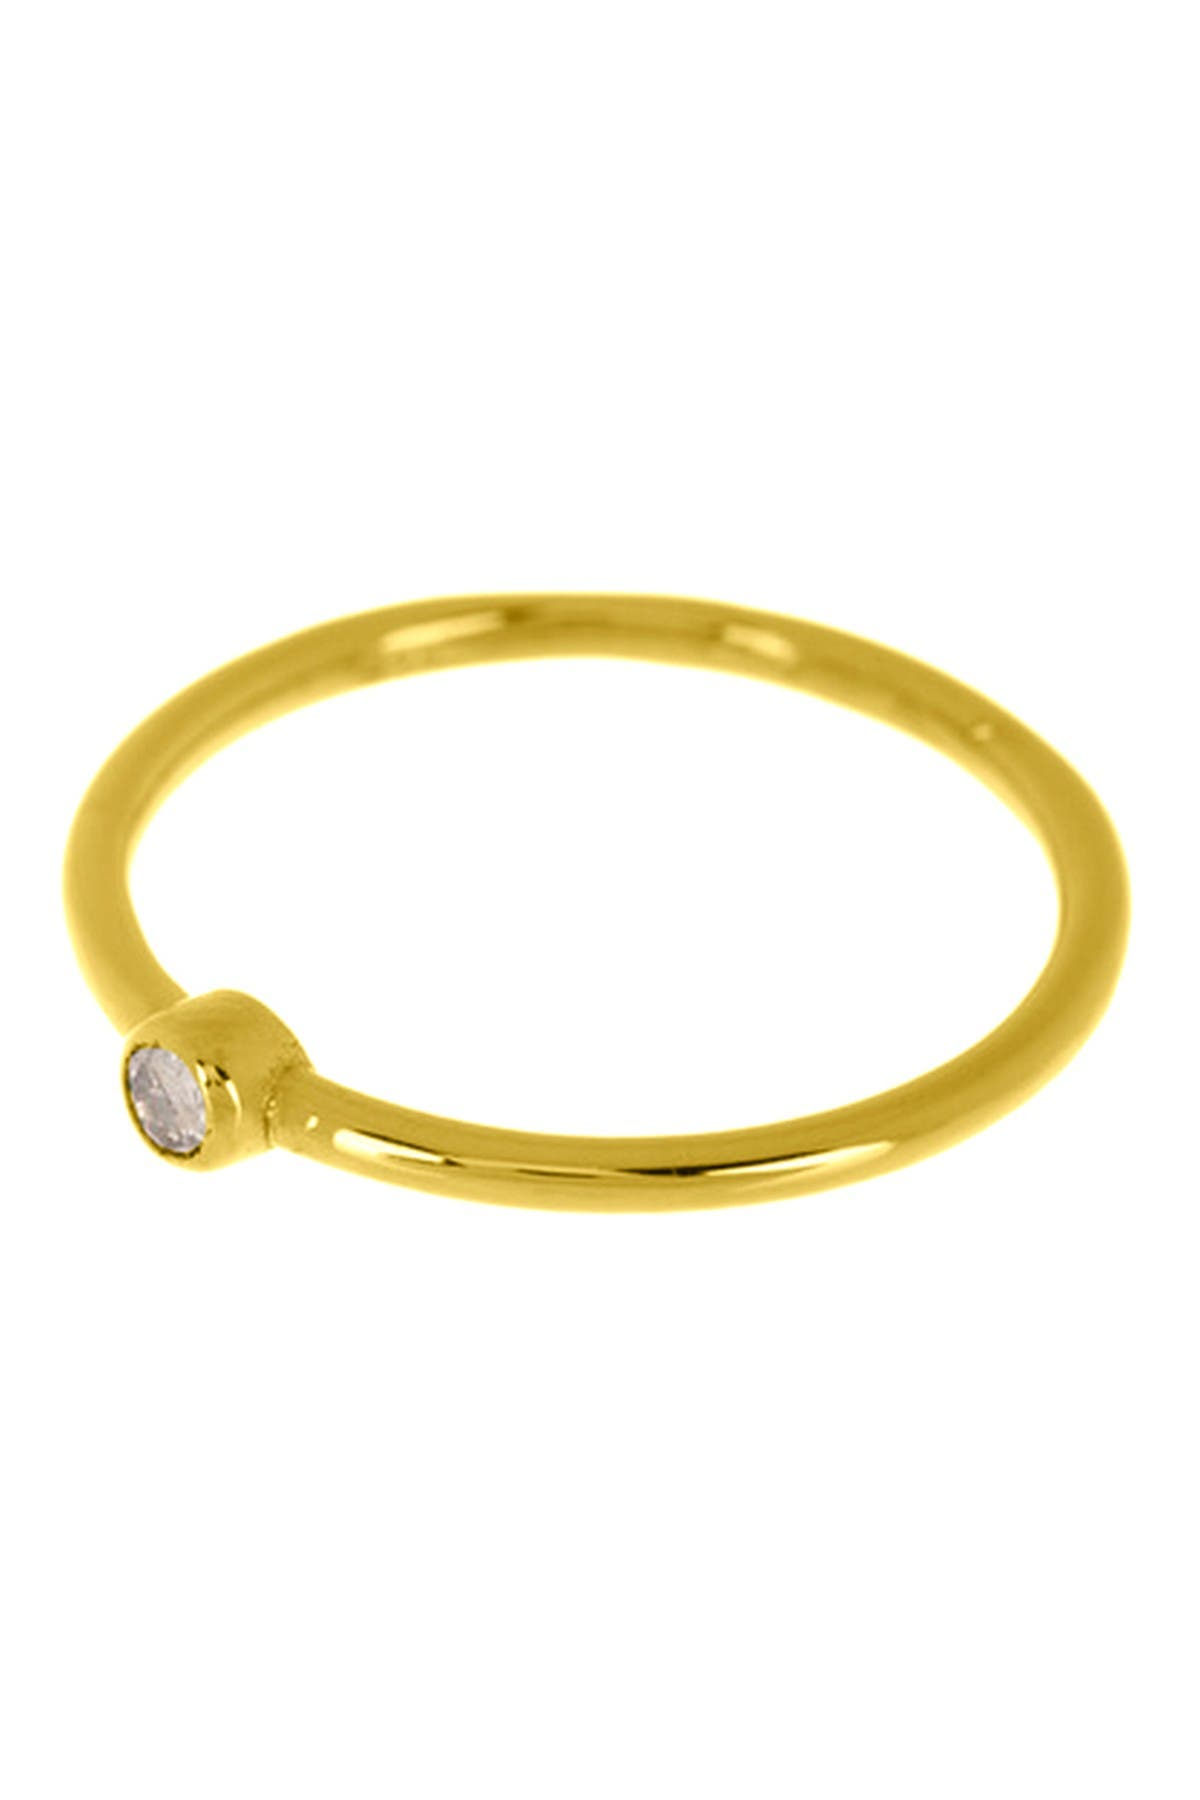 Image of ADORNIA Fine 14K Yellow Gold Plated Sterling Silver Bezel Set Round Diamond Ring - 0.03 ctw